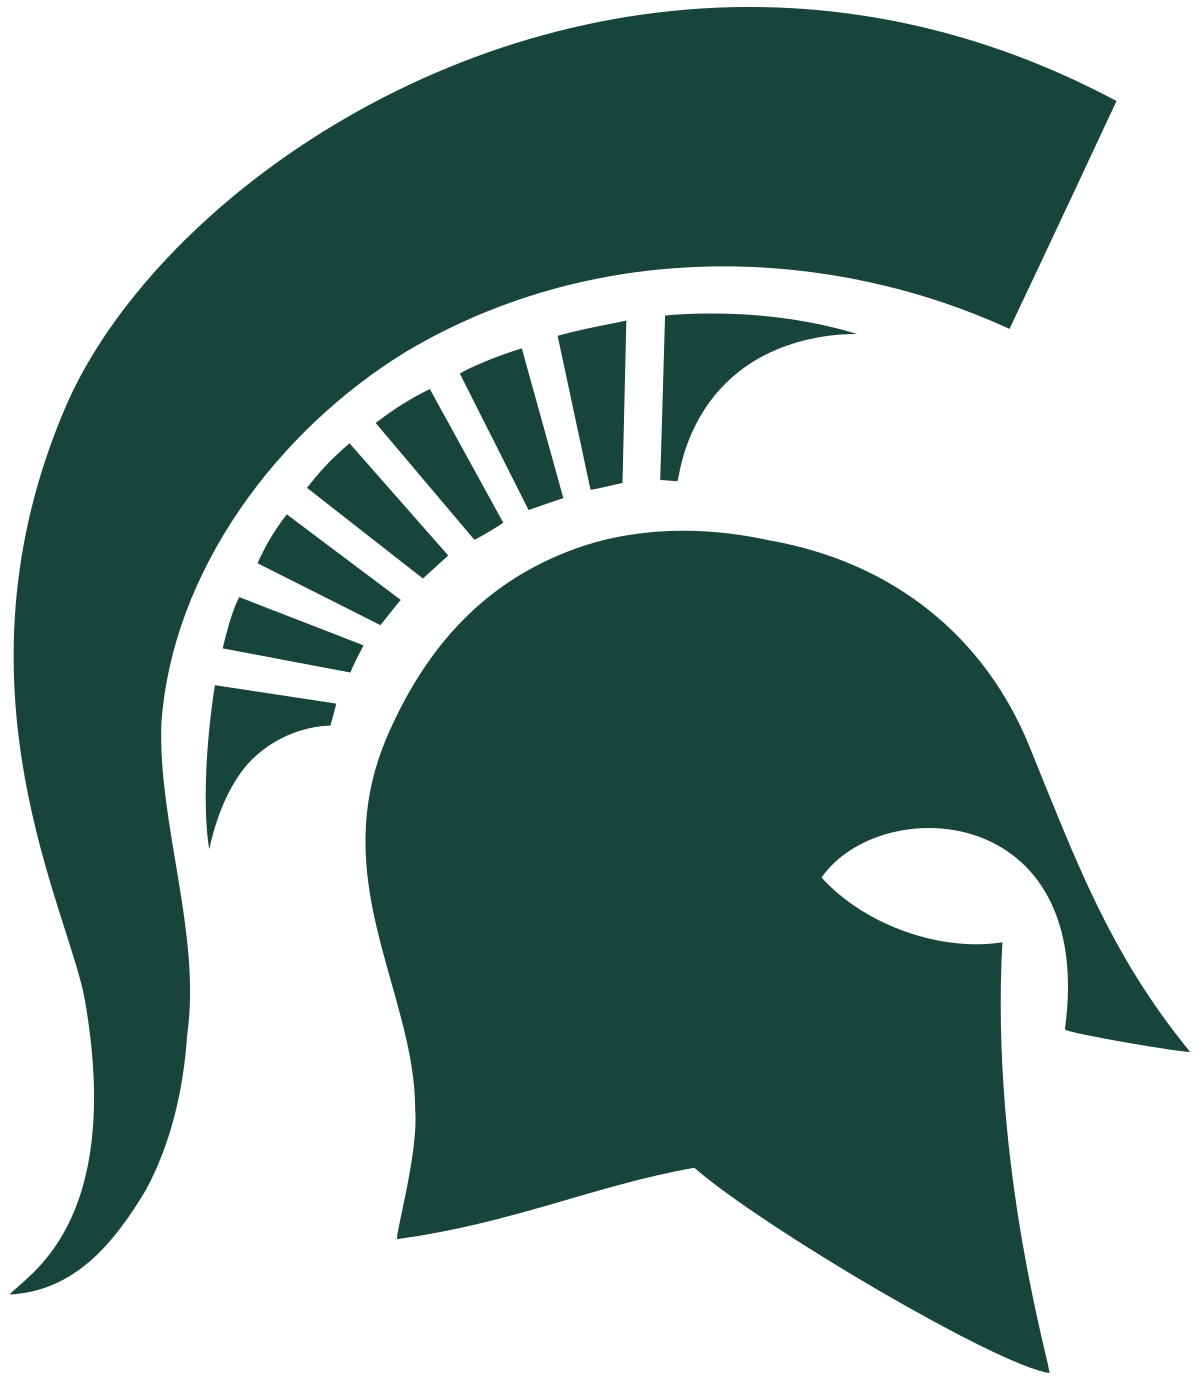 Michigan State Spartans.